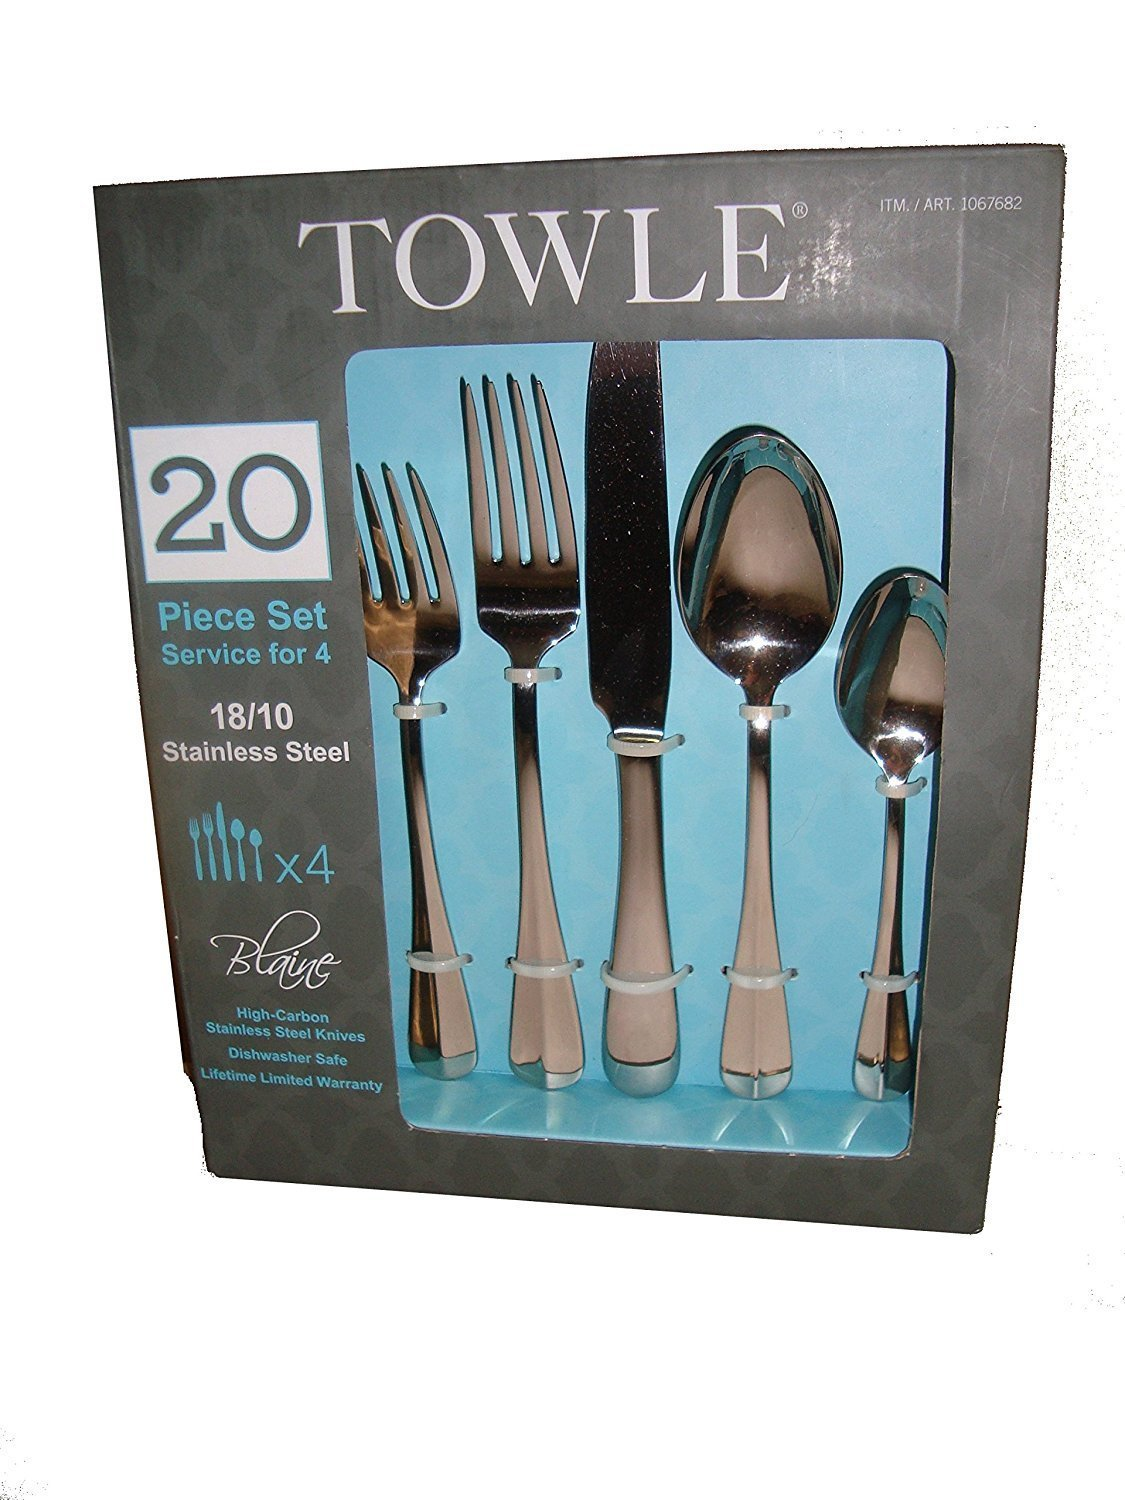 Amazon.com | Towle Blaine 20 Piece Set Service For 4 18/10 Stainless ...